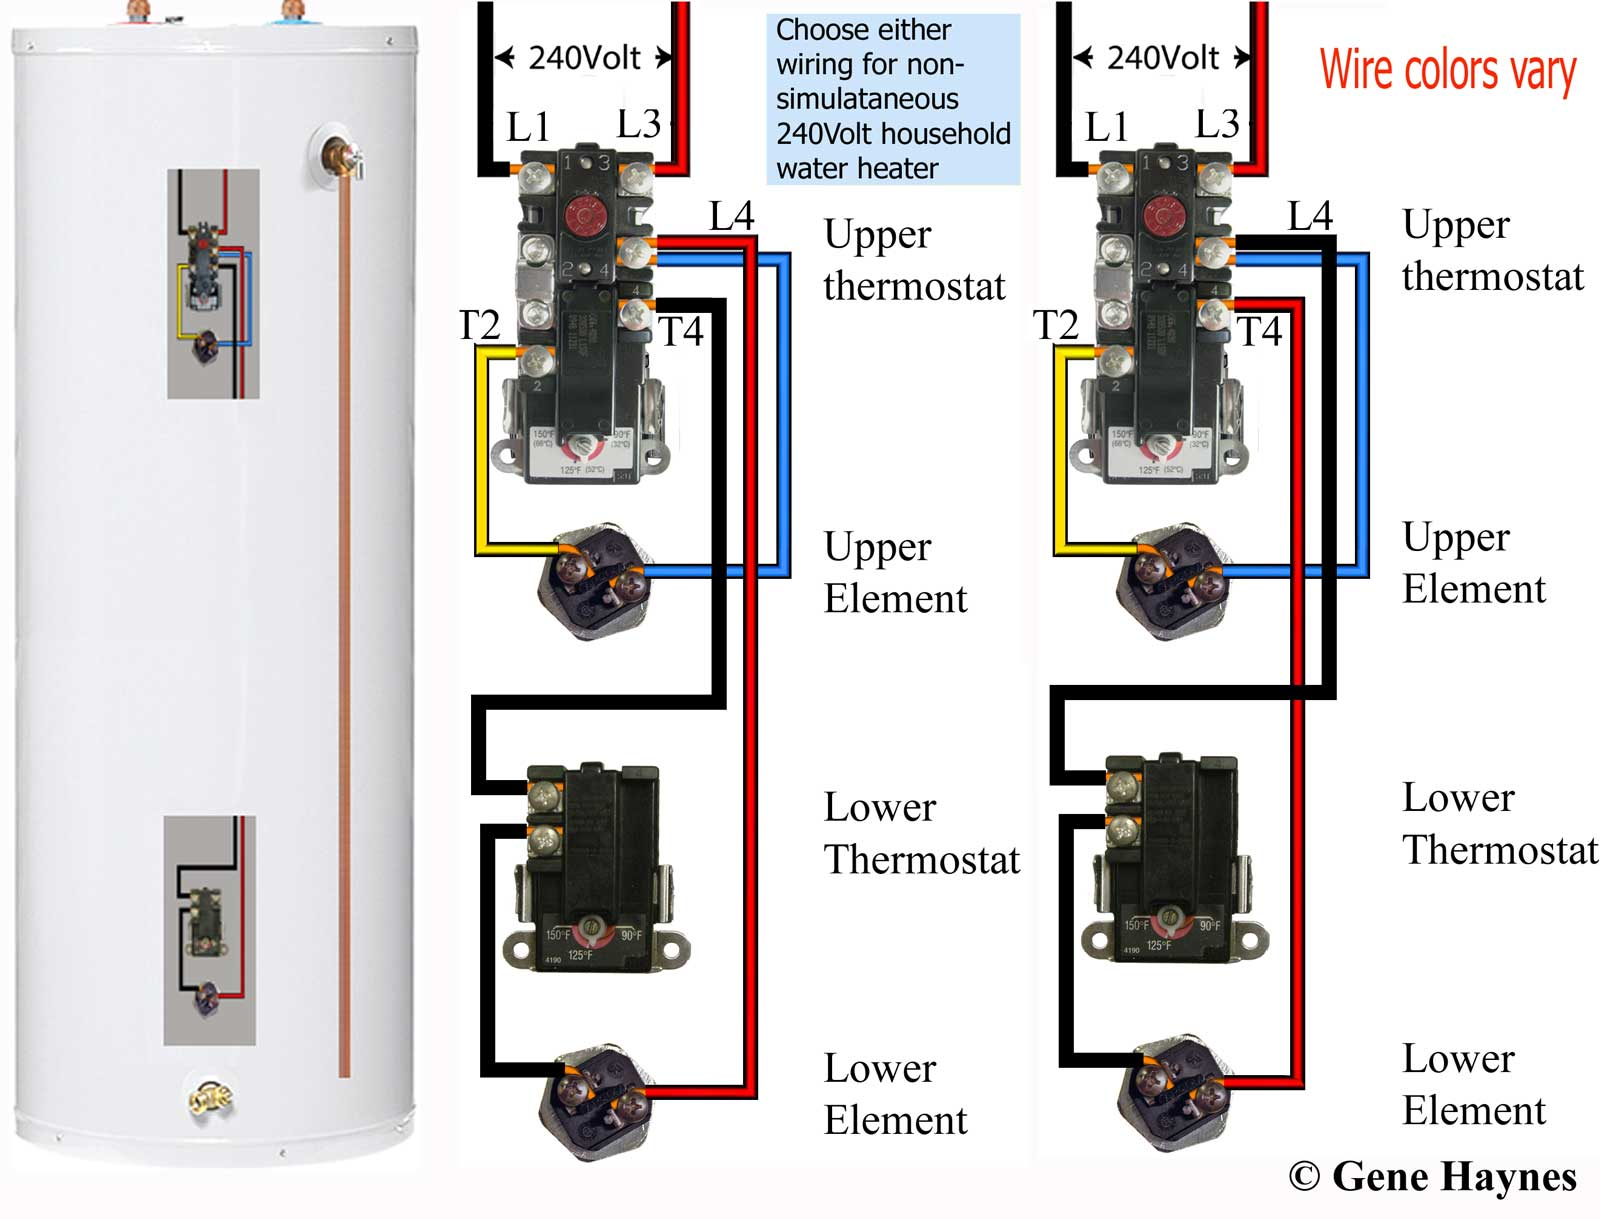 Wiring Diagram For 220 Water Heater Data Baseboard Requirements Hot Schematic Schema Diagrams Electric Element